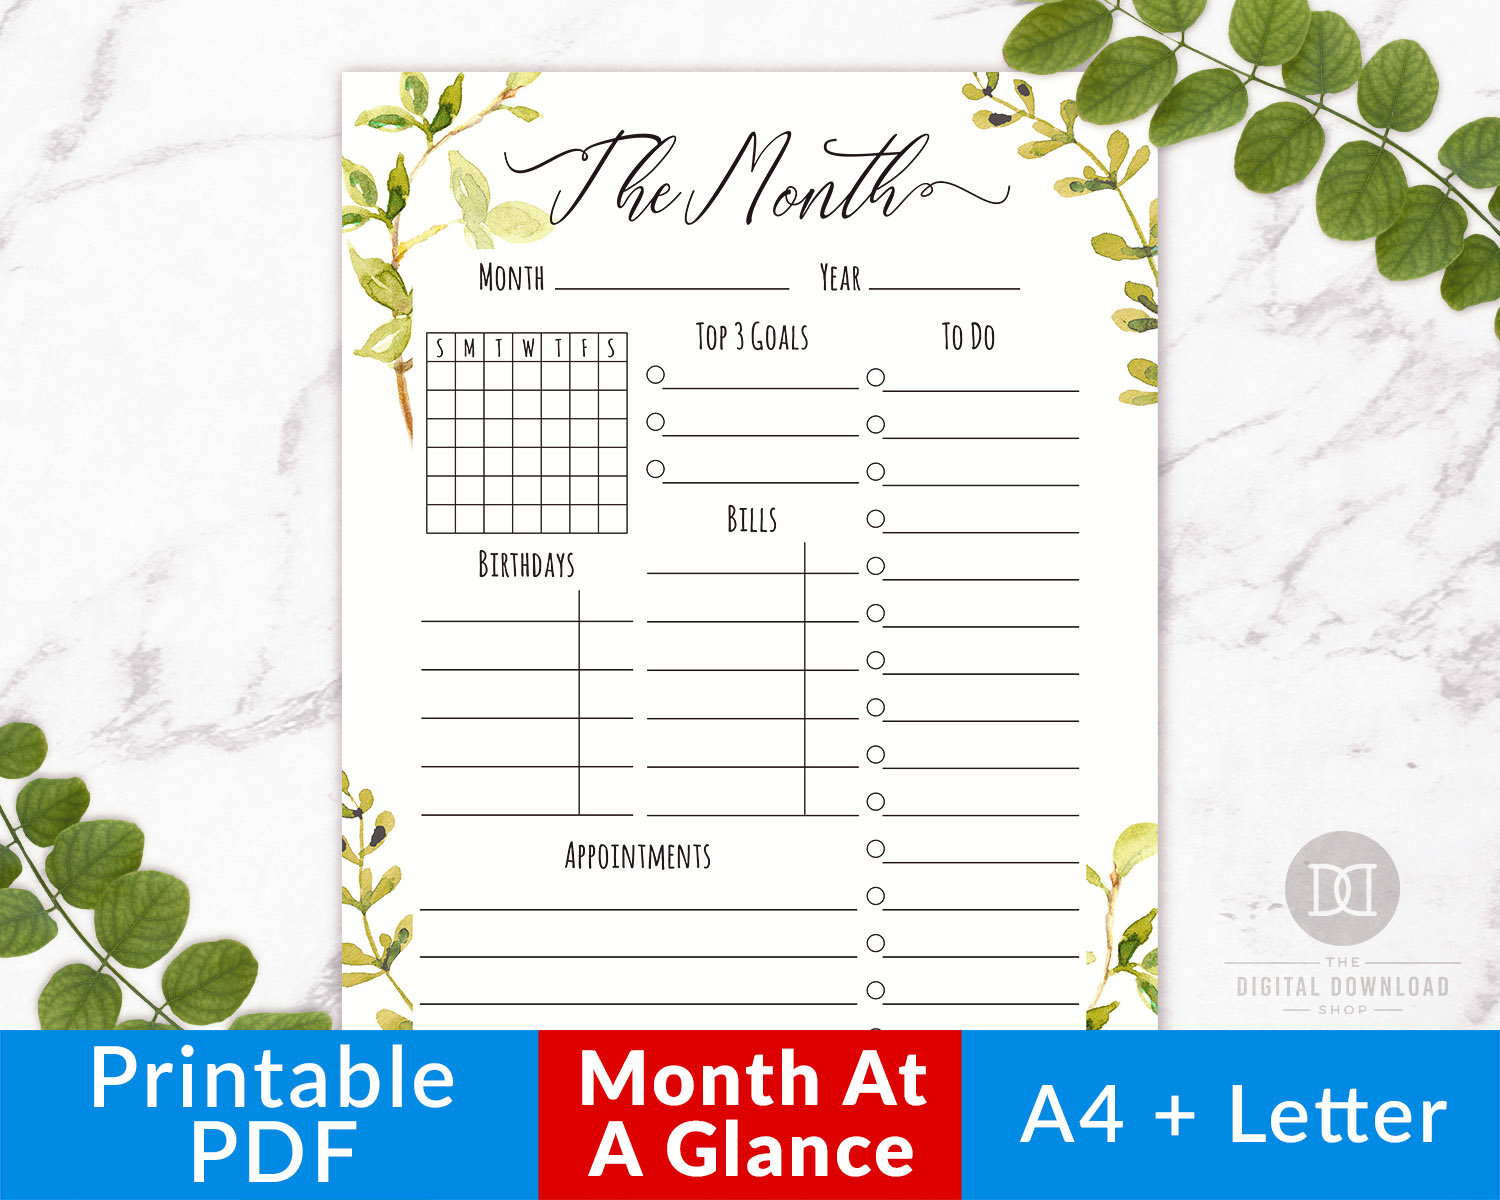 Month At A Glance Printable- Watercolor Greenery, Monthly Planner  Printable, Monthly Organizer, Monthly Calendar, Monthly To Do List Pdf